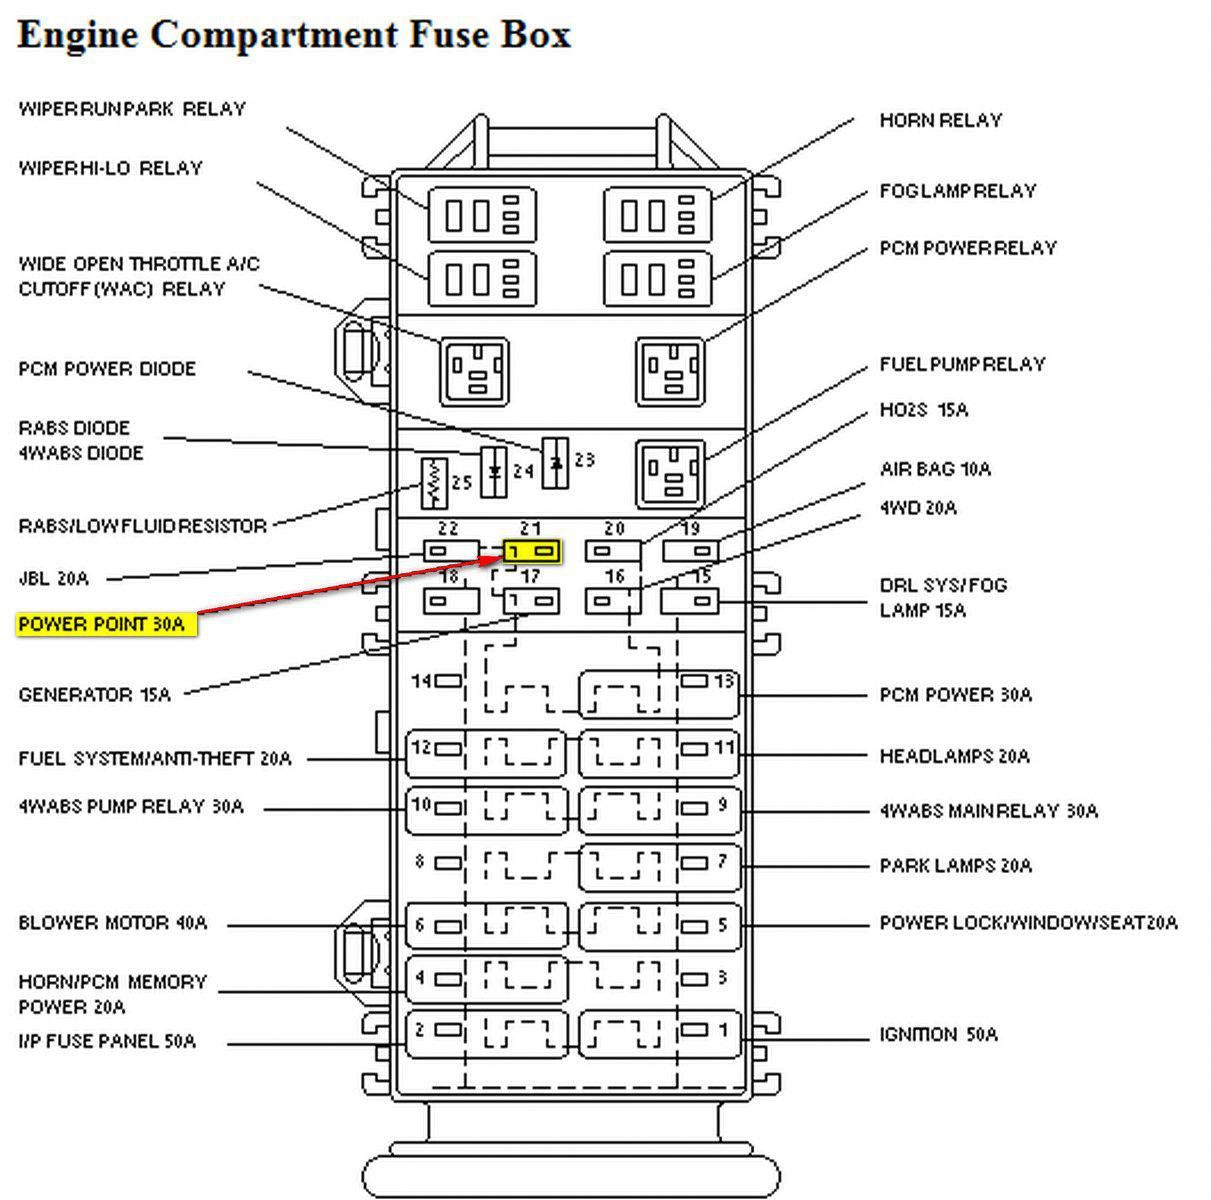 Wiring Diagram For 1995 Ford Ranger from i.pinimg.com